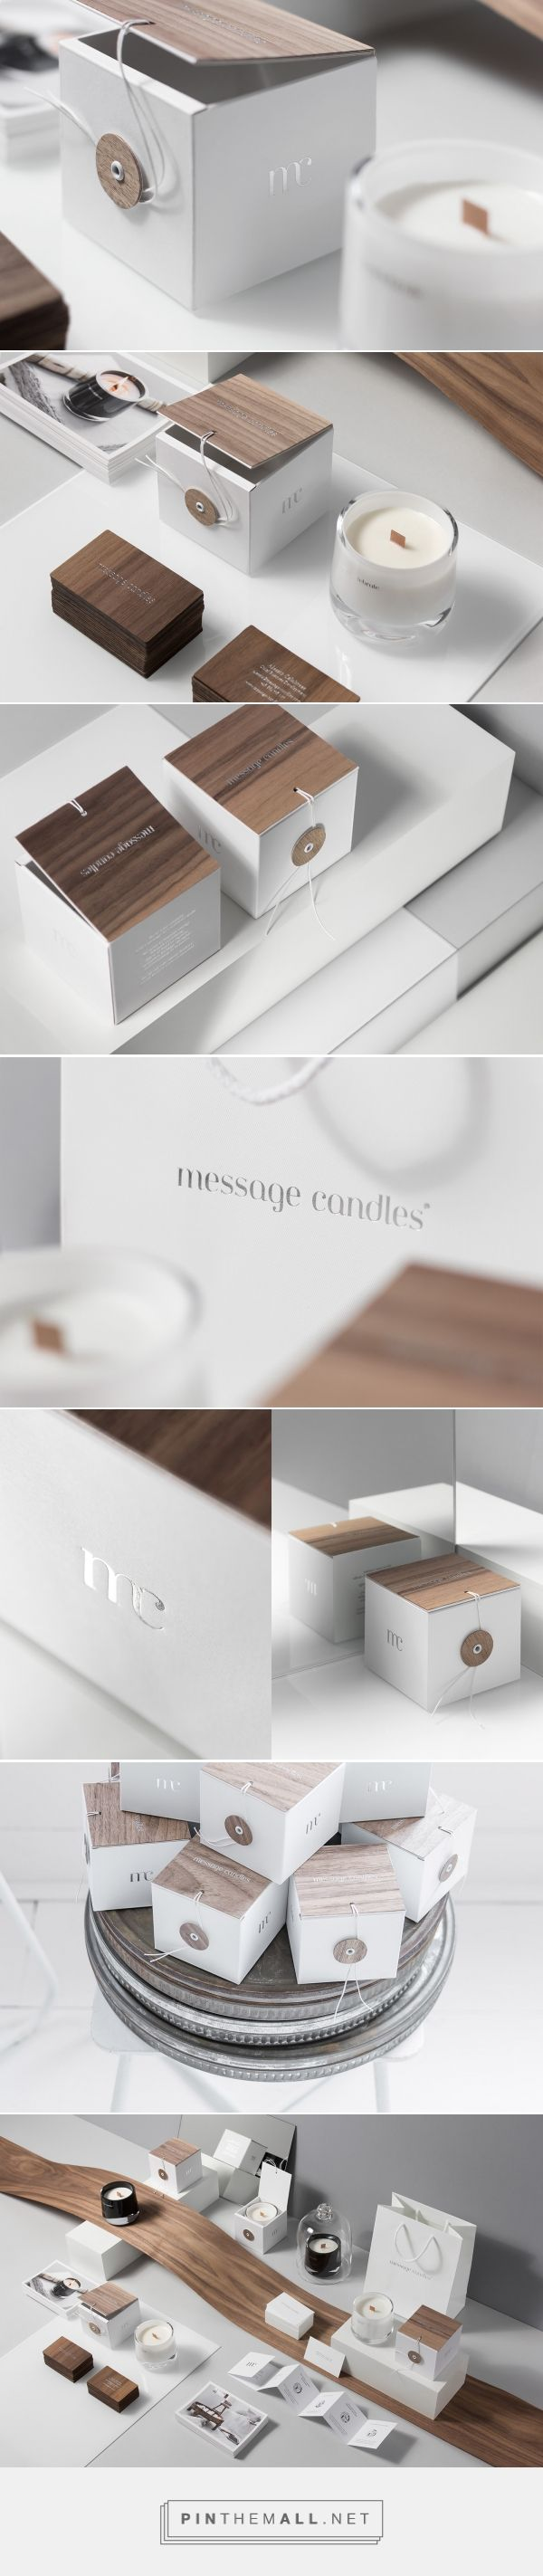 Message candles by For brands .                                                                                                                                                                                 More